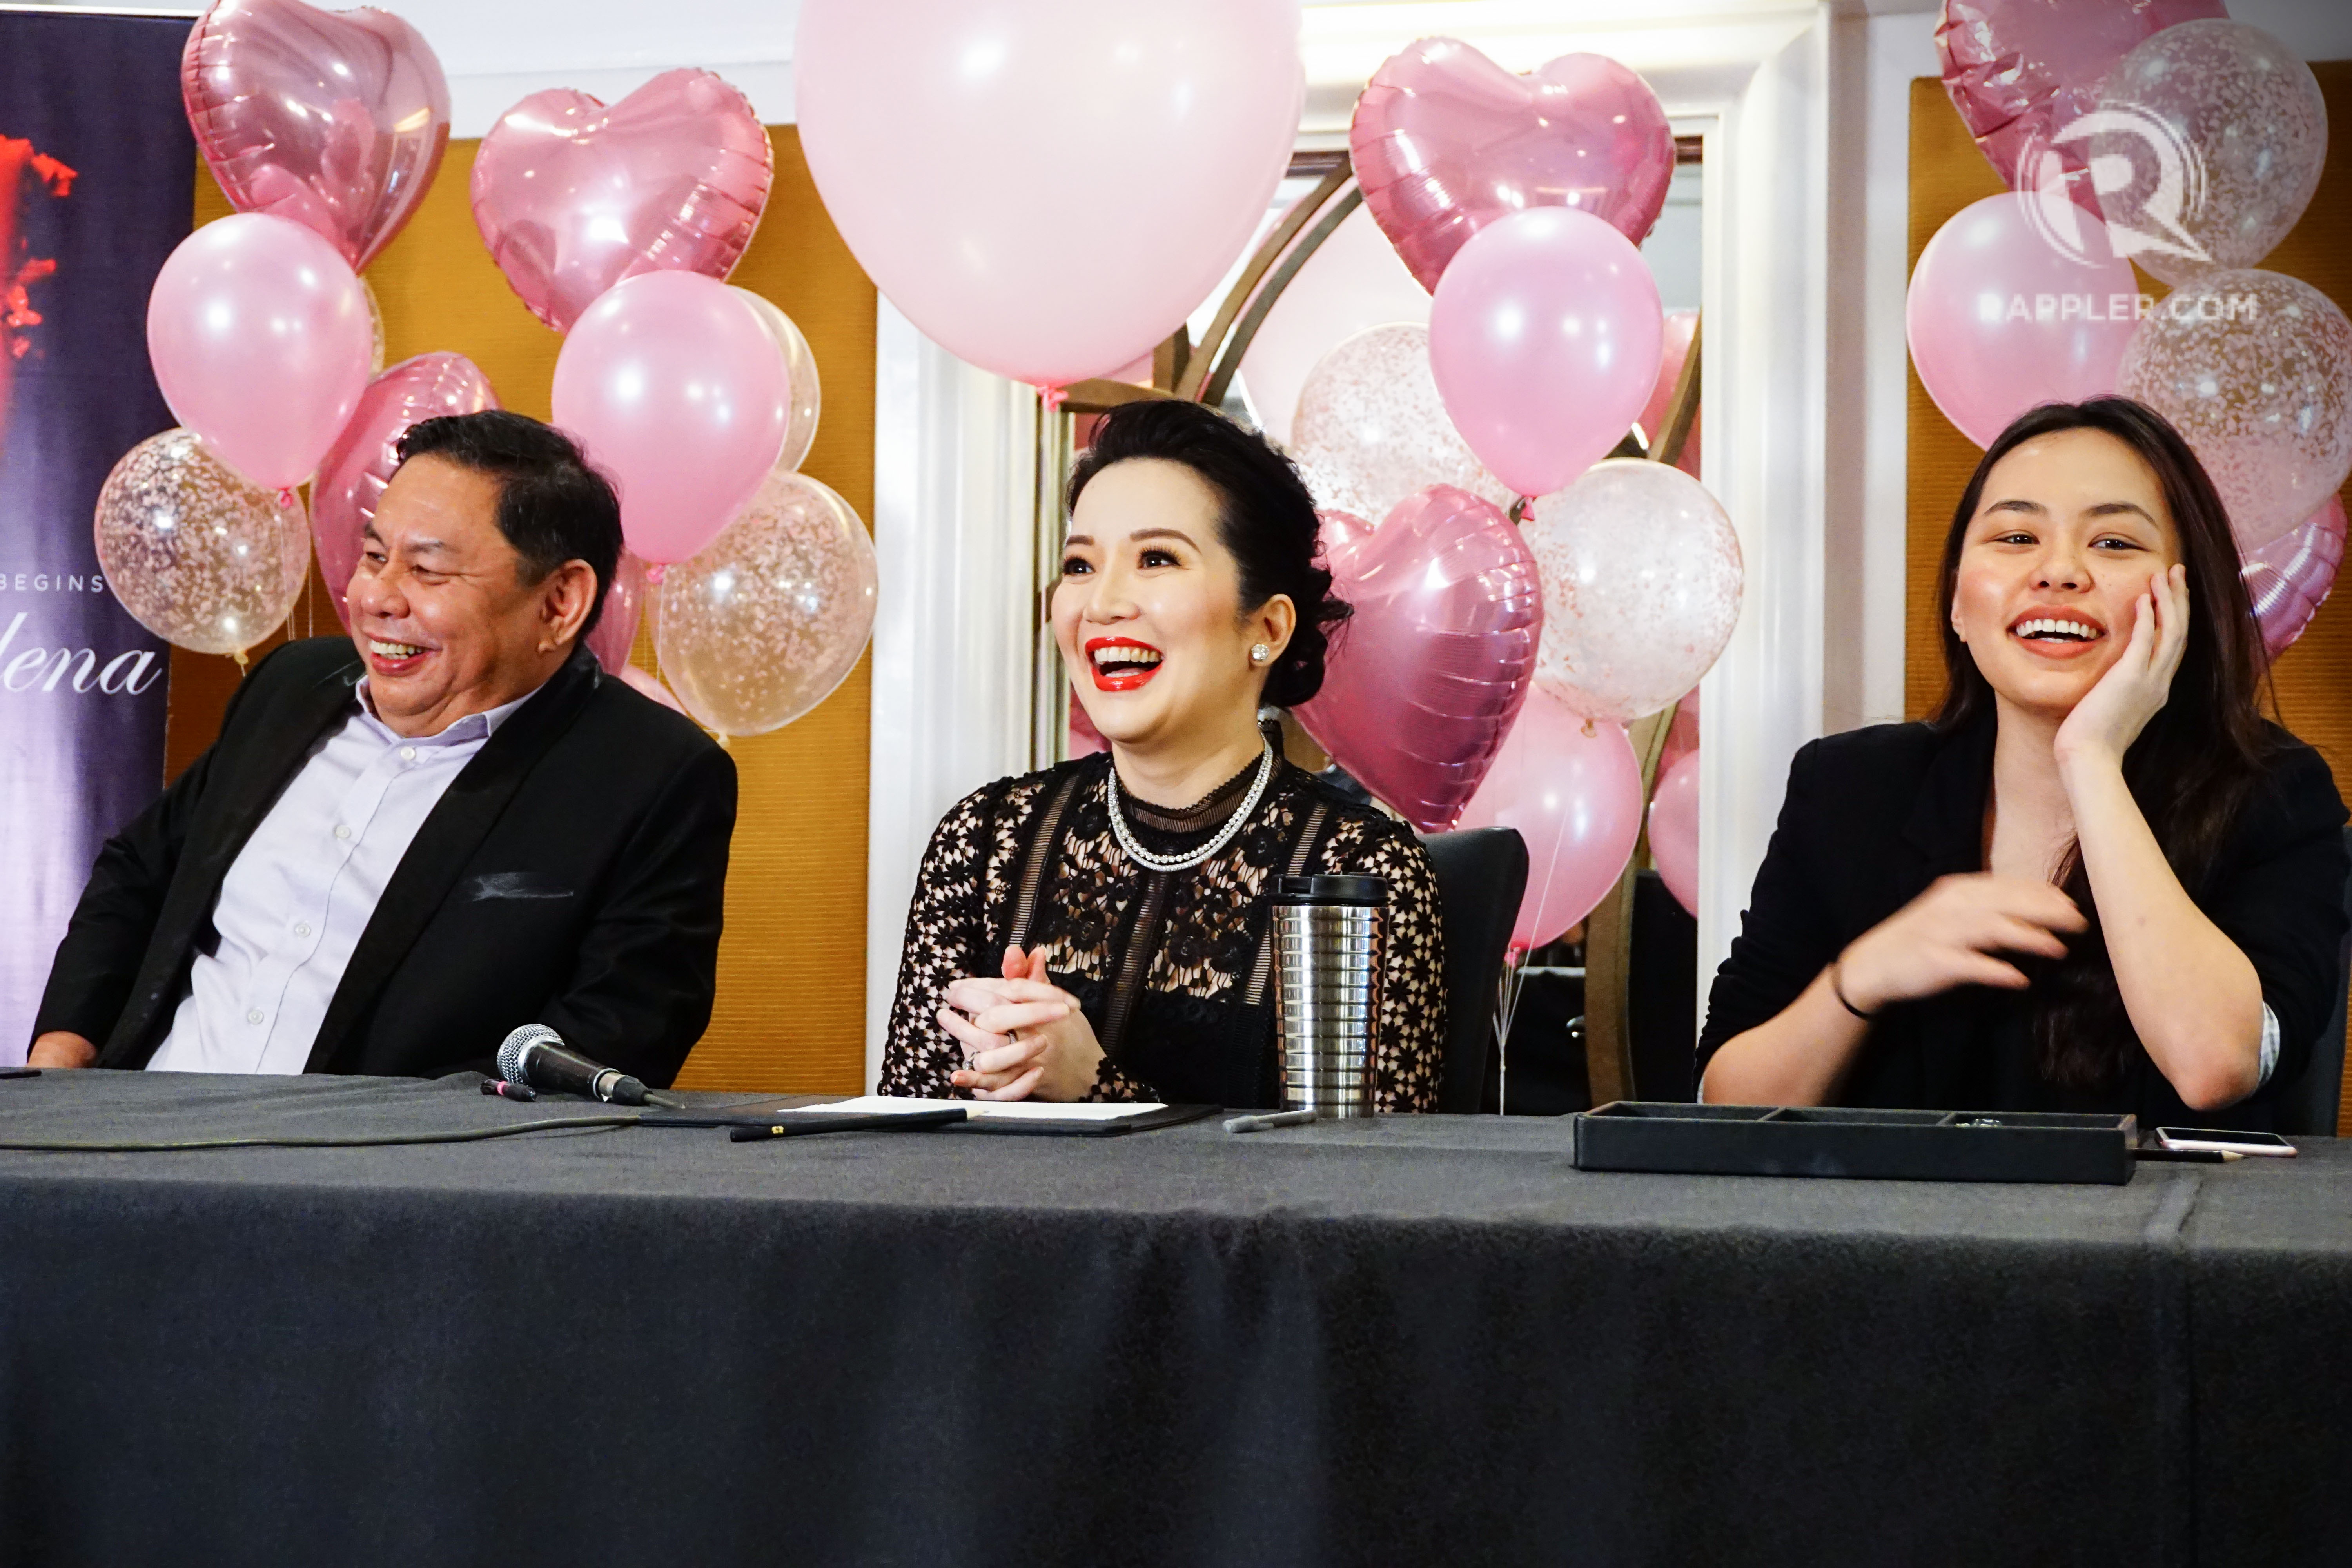 HAPPY MOMENTS. Kris Aquino speaks to the press at her contract signing with Ever Bilena. From left to right: Ever Bilena CEO Dioceldo Sy, Kris Aquino, Ever Bilena key accounts manager Denice Sy. Photo by Vernise L. Tantuco/Rappler